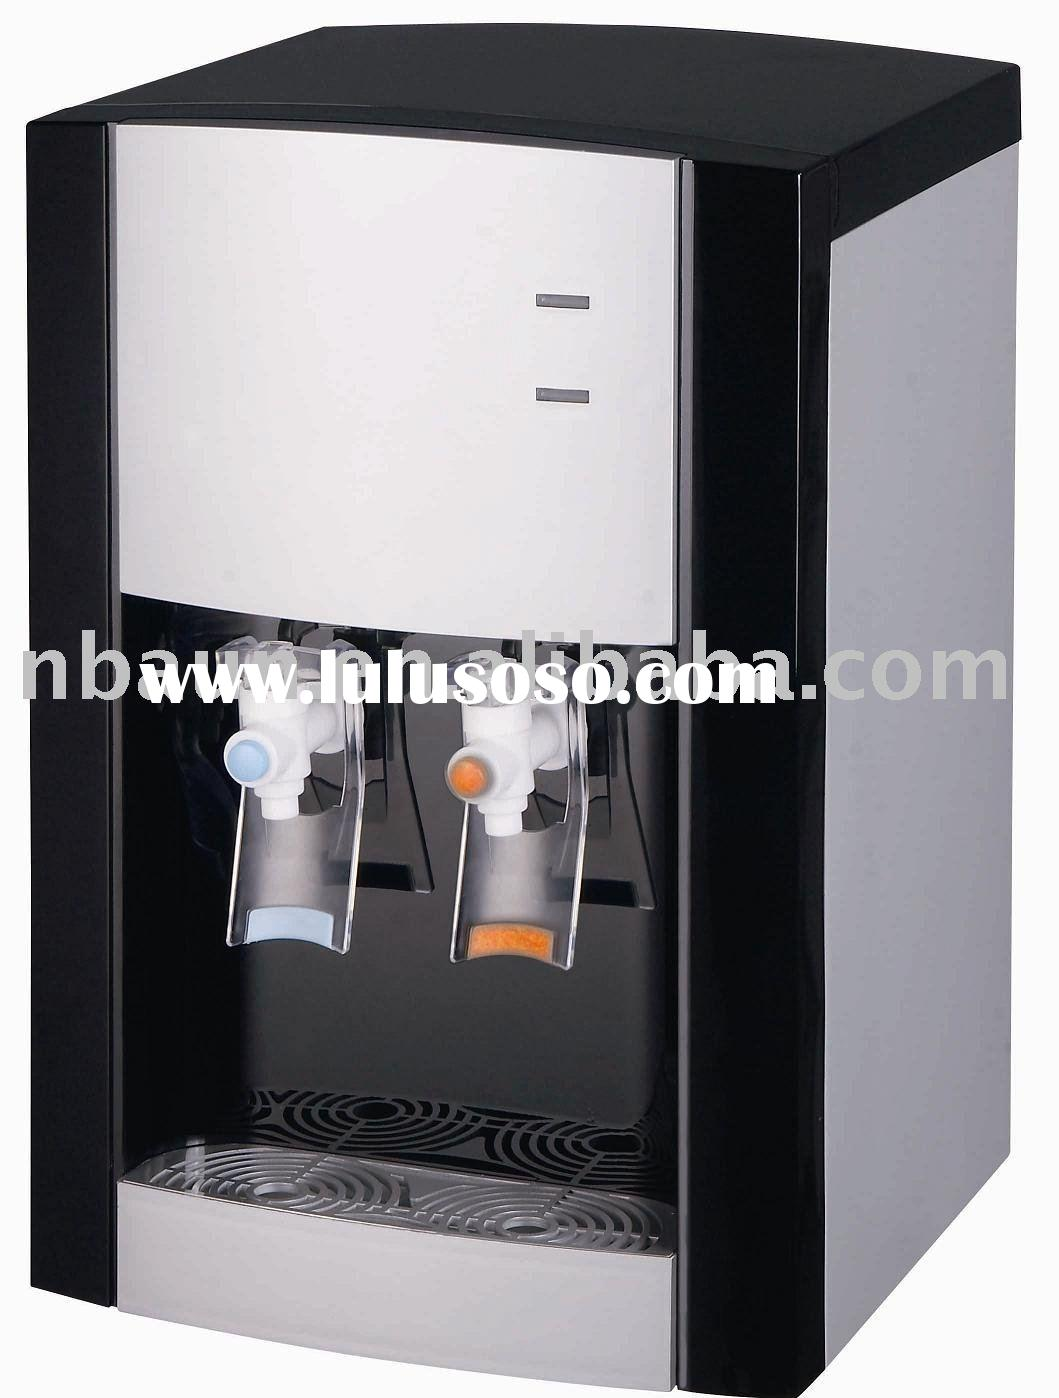 Desktop hot and cold water dispenser